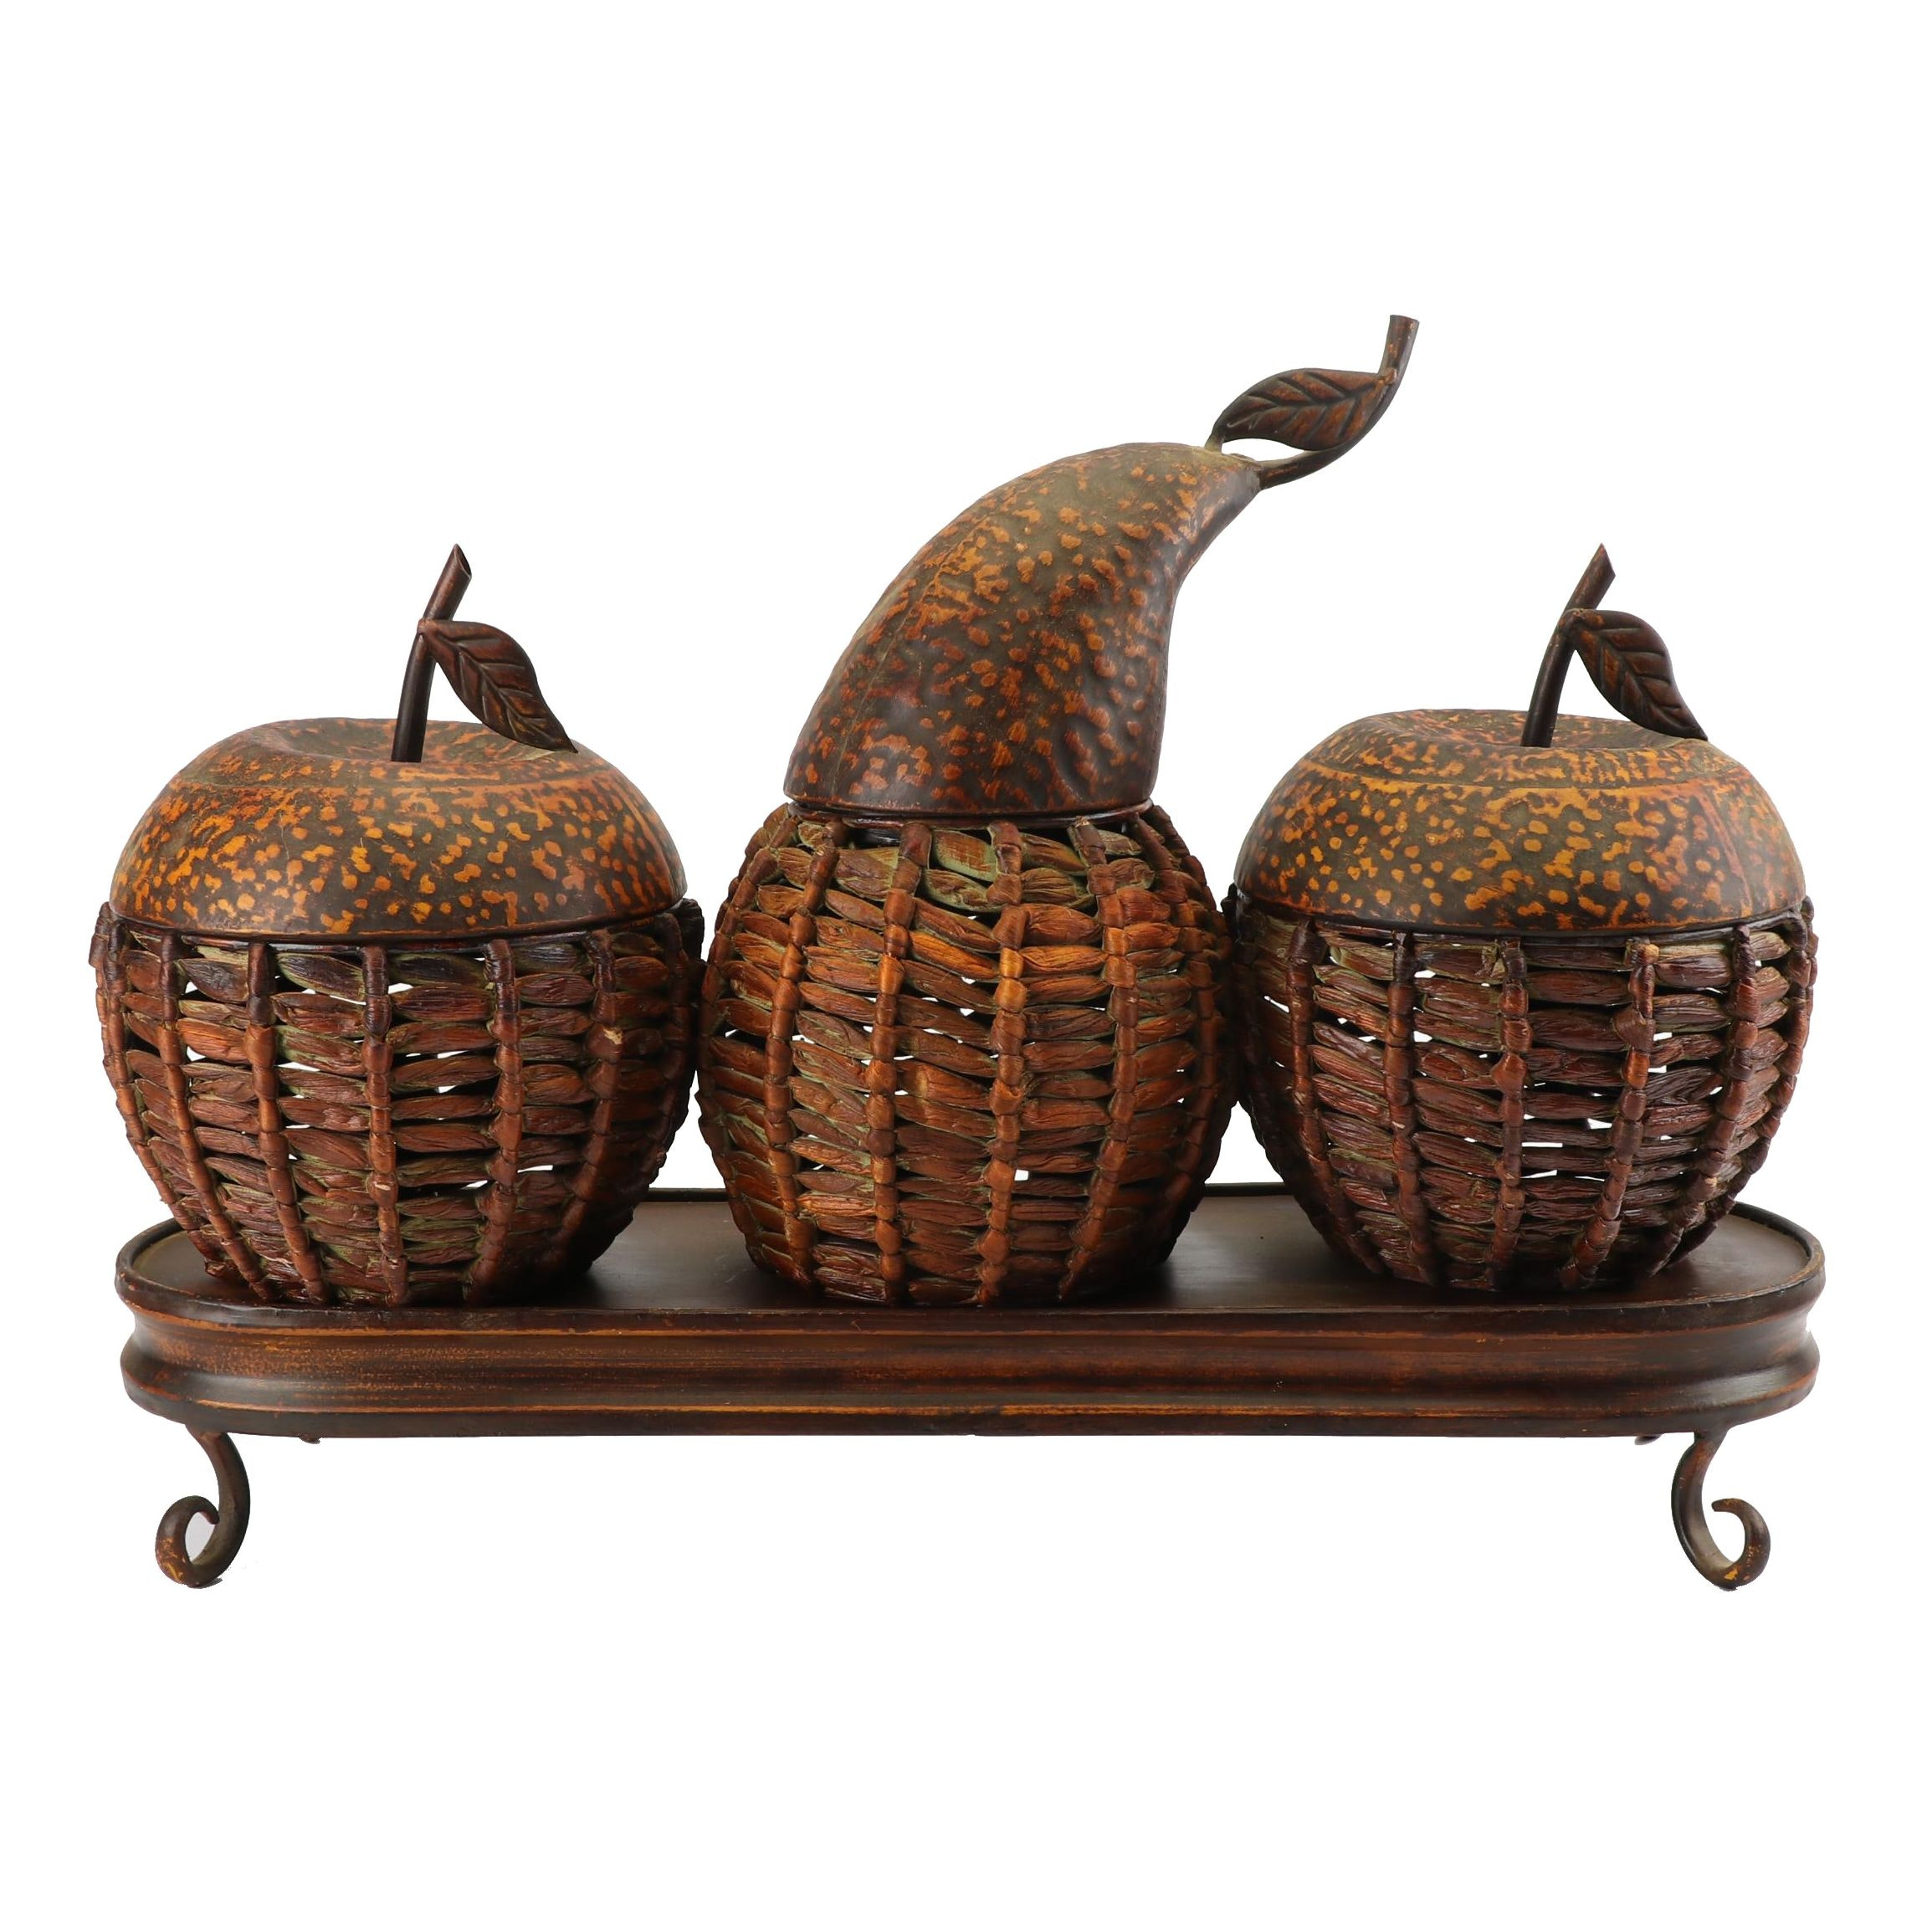 Apple and Pear Shaped Rattan and Metal Baskets with Display Tray